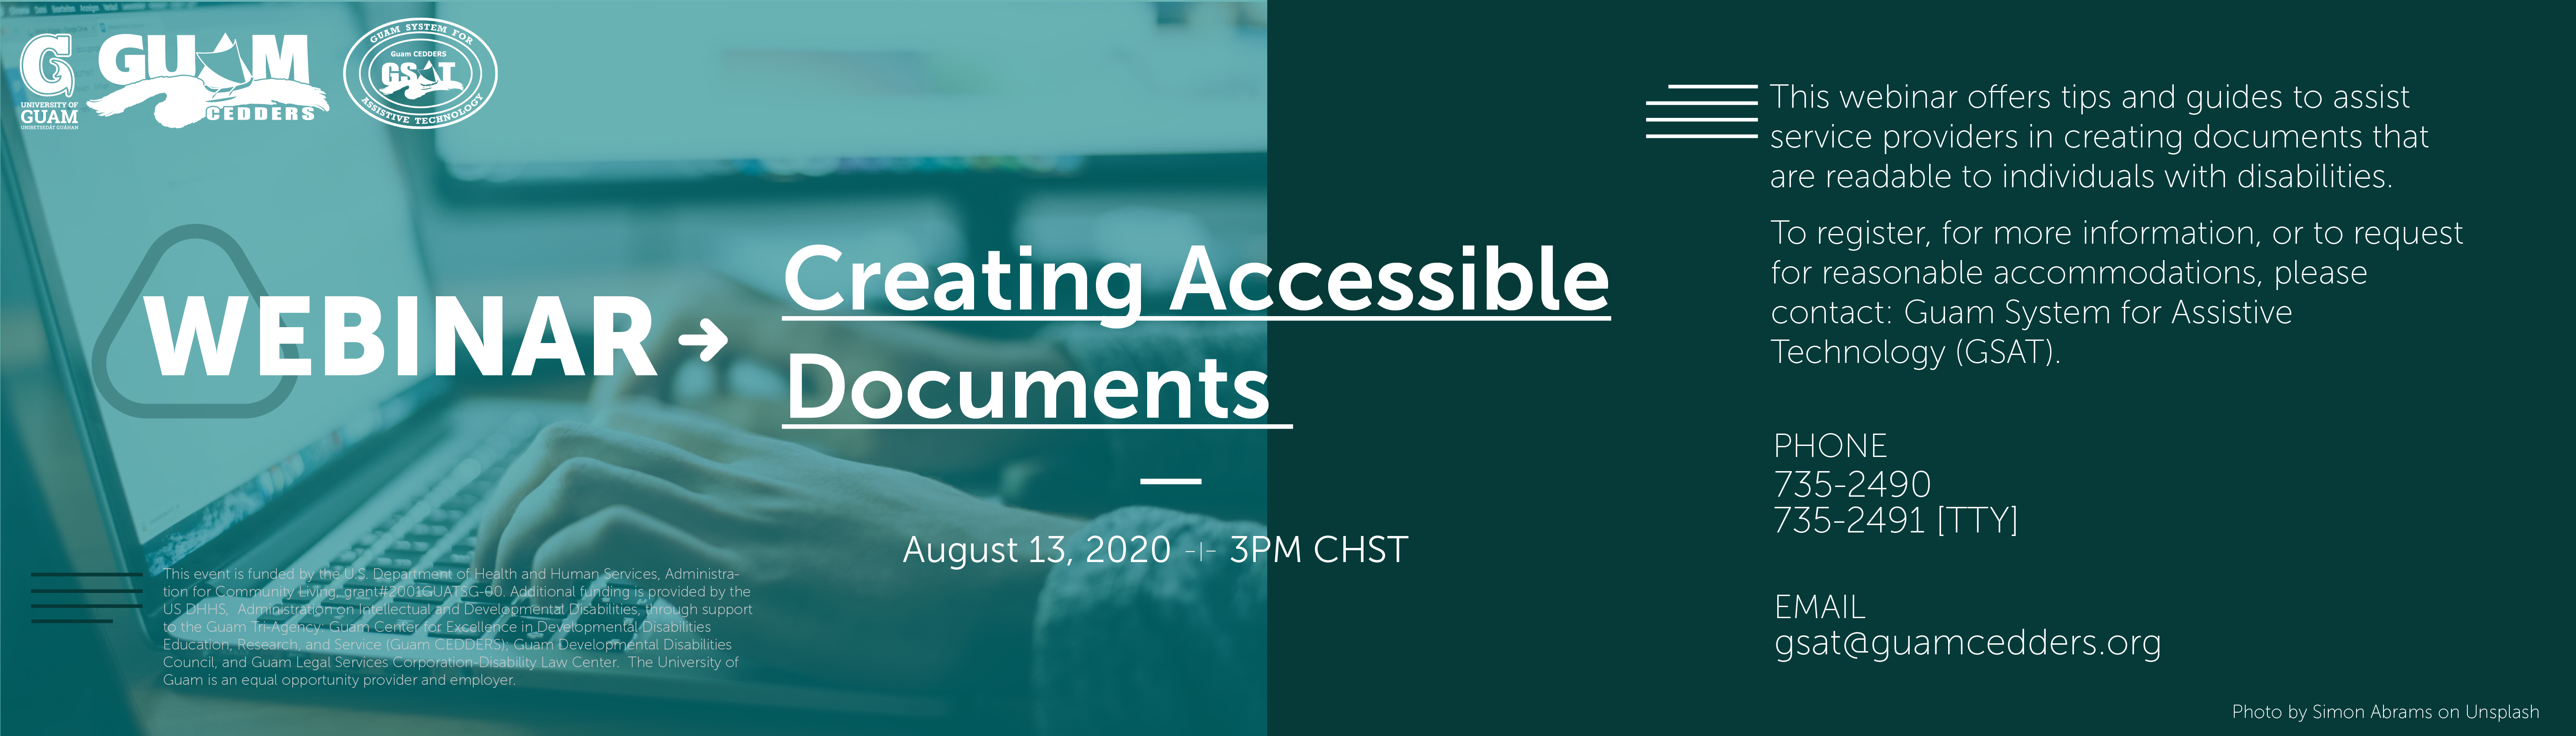 This webinar offers tips and guides to assist service providers in creating documents that are readable to individuals with disabilities. To register, for more information, or to request for reasonable accommodations, please contact: Guam System for Assistive Technology (GSAT). PHONE 735-2490, 735-2491 [tty] EMAIL gsat@guamcedders.org